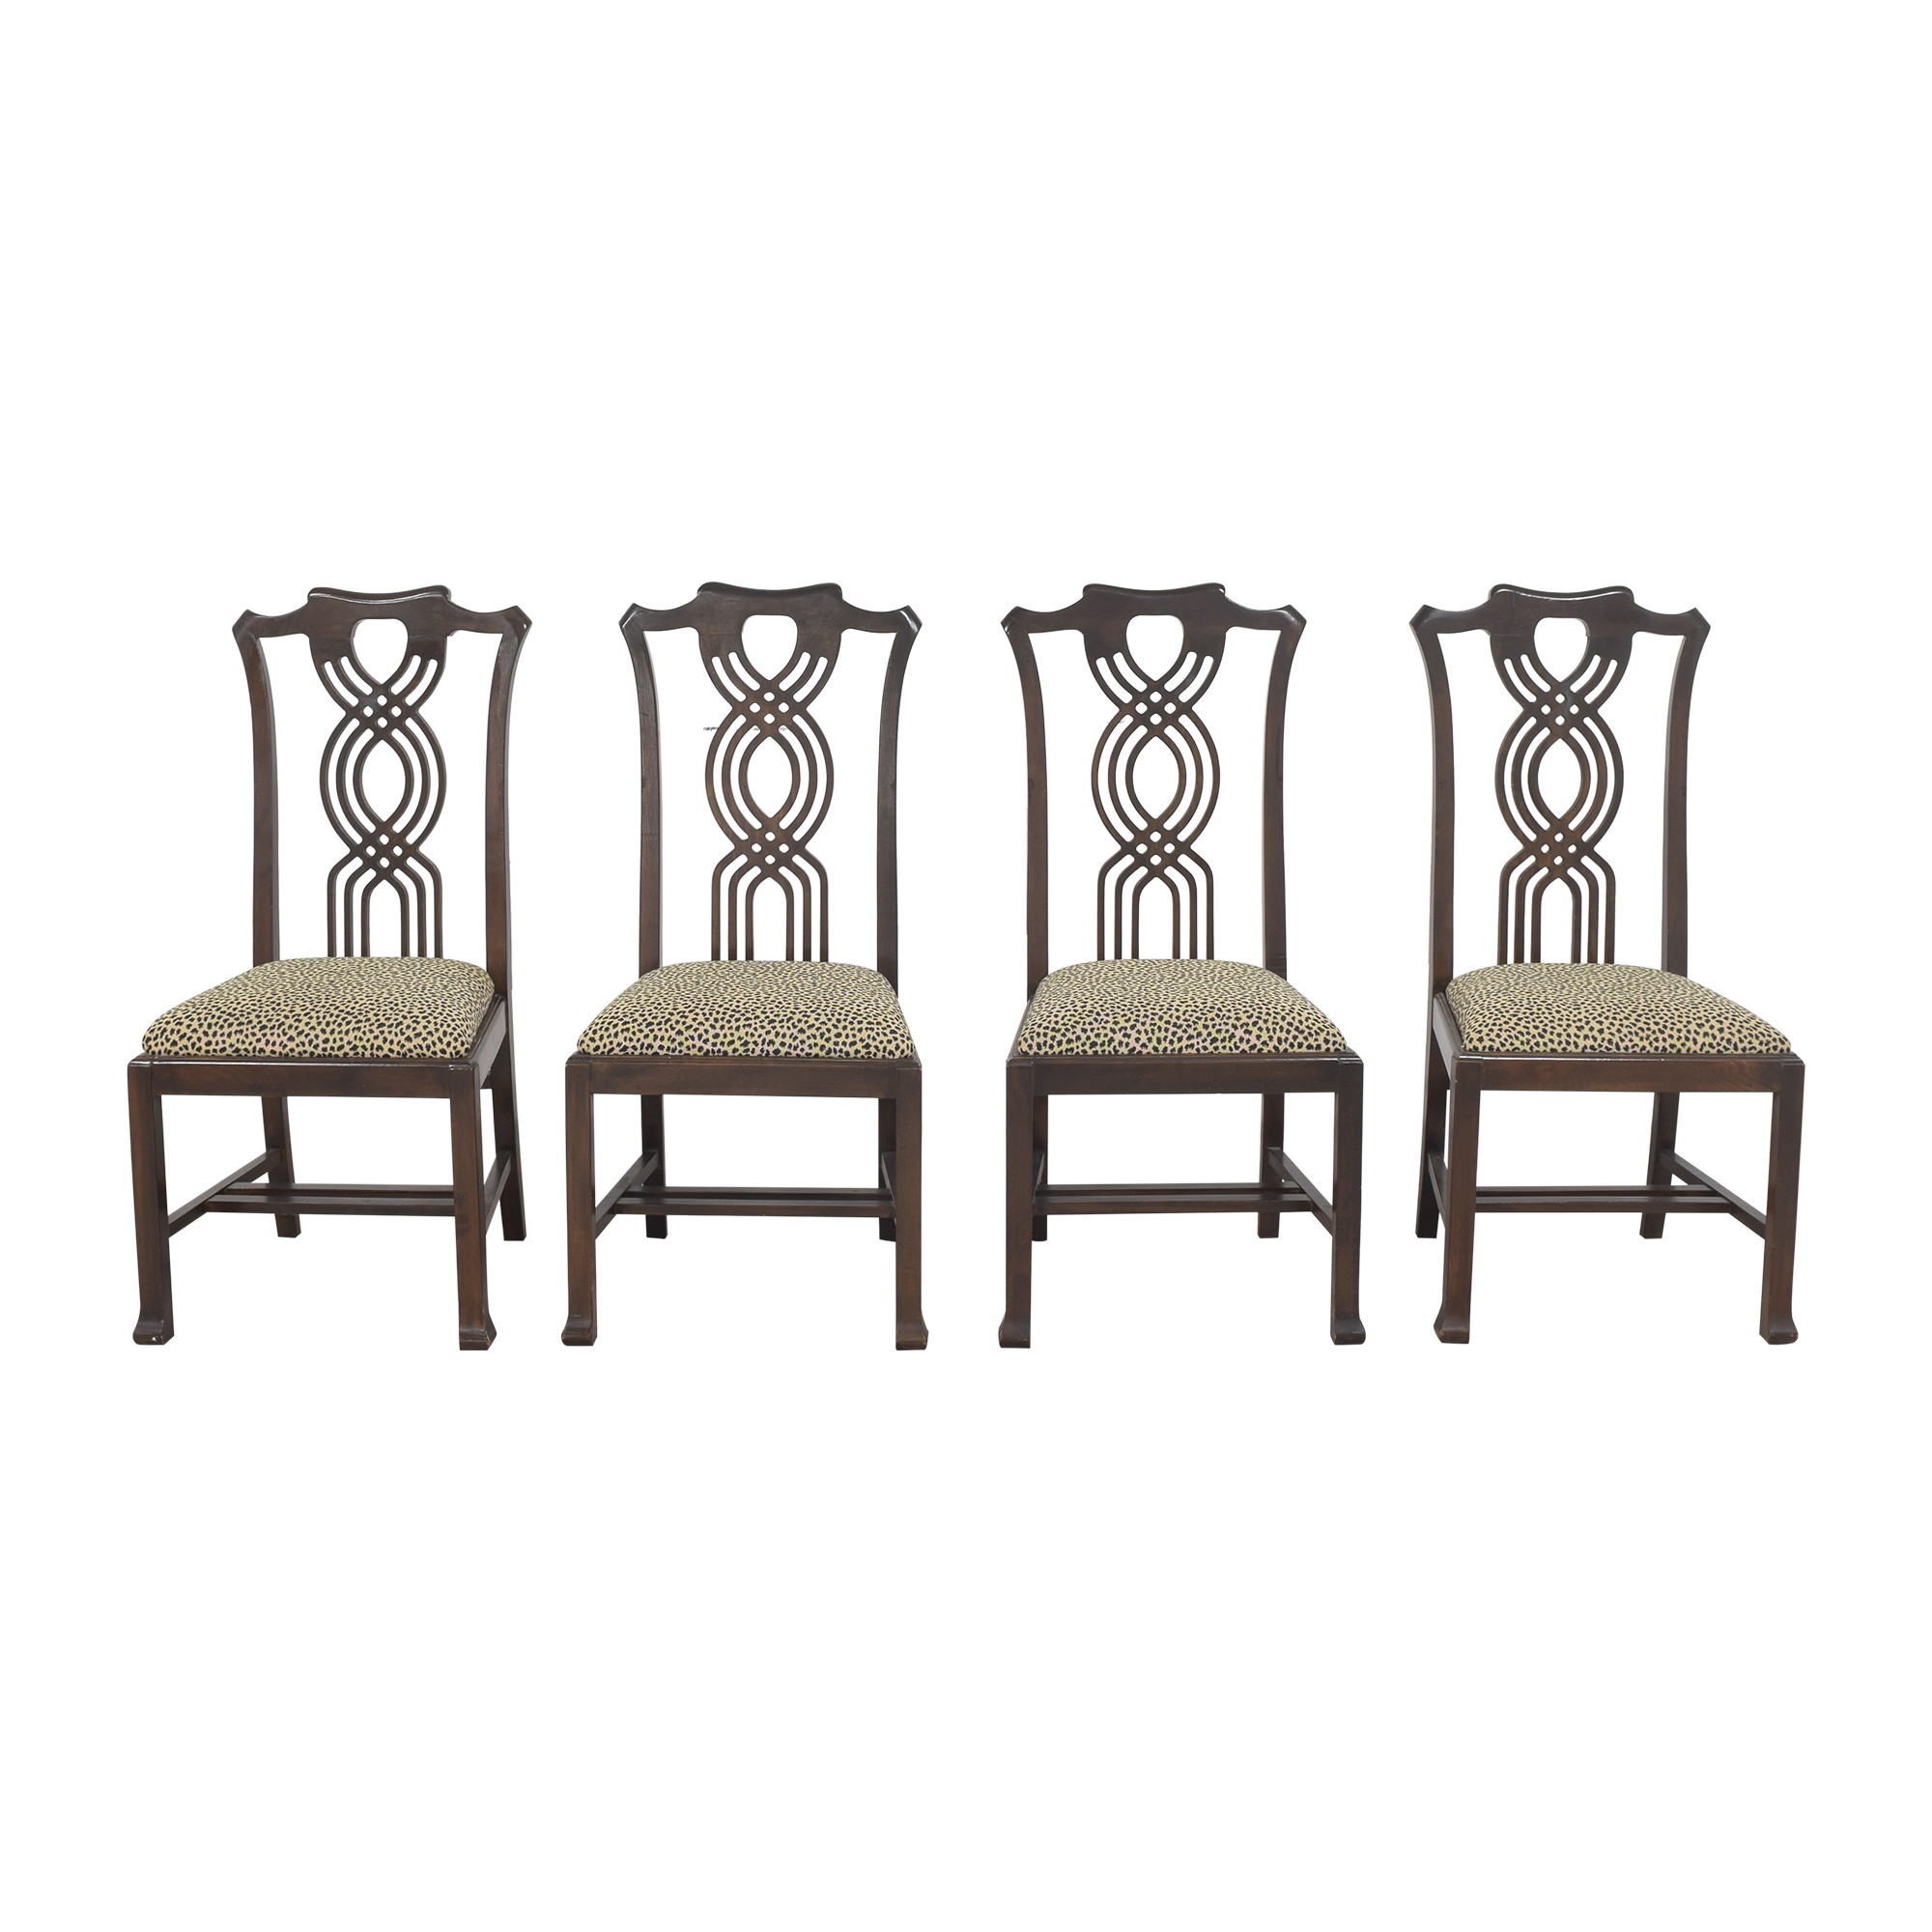 Animal Print Upholstered Dining Chairs Dining Chairs